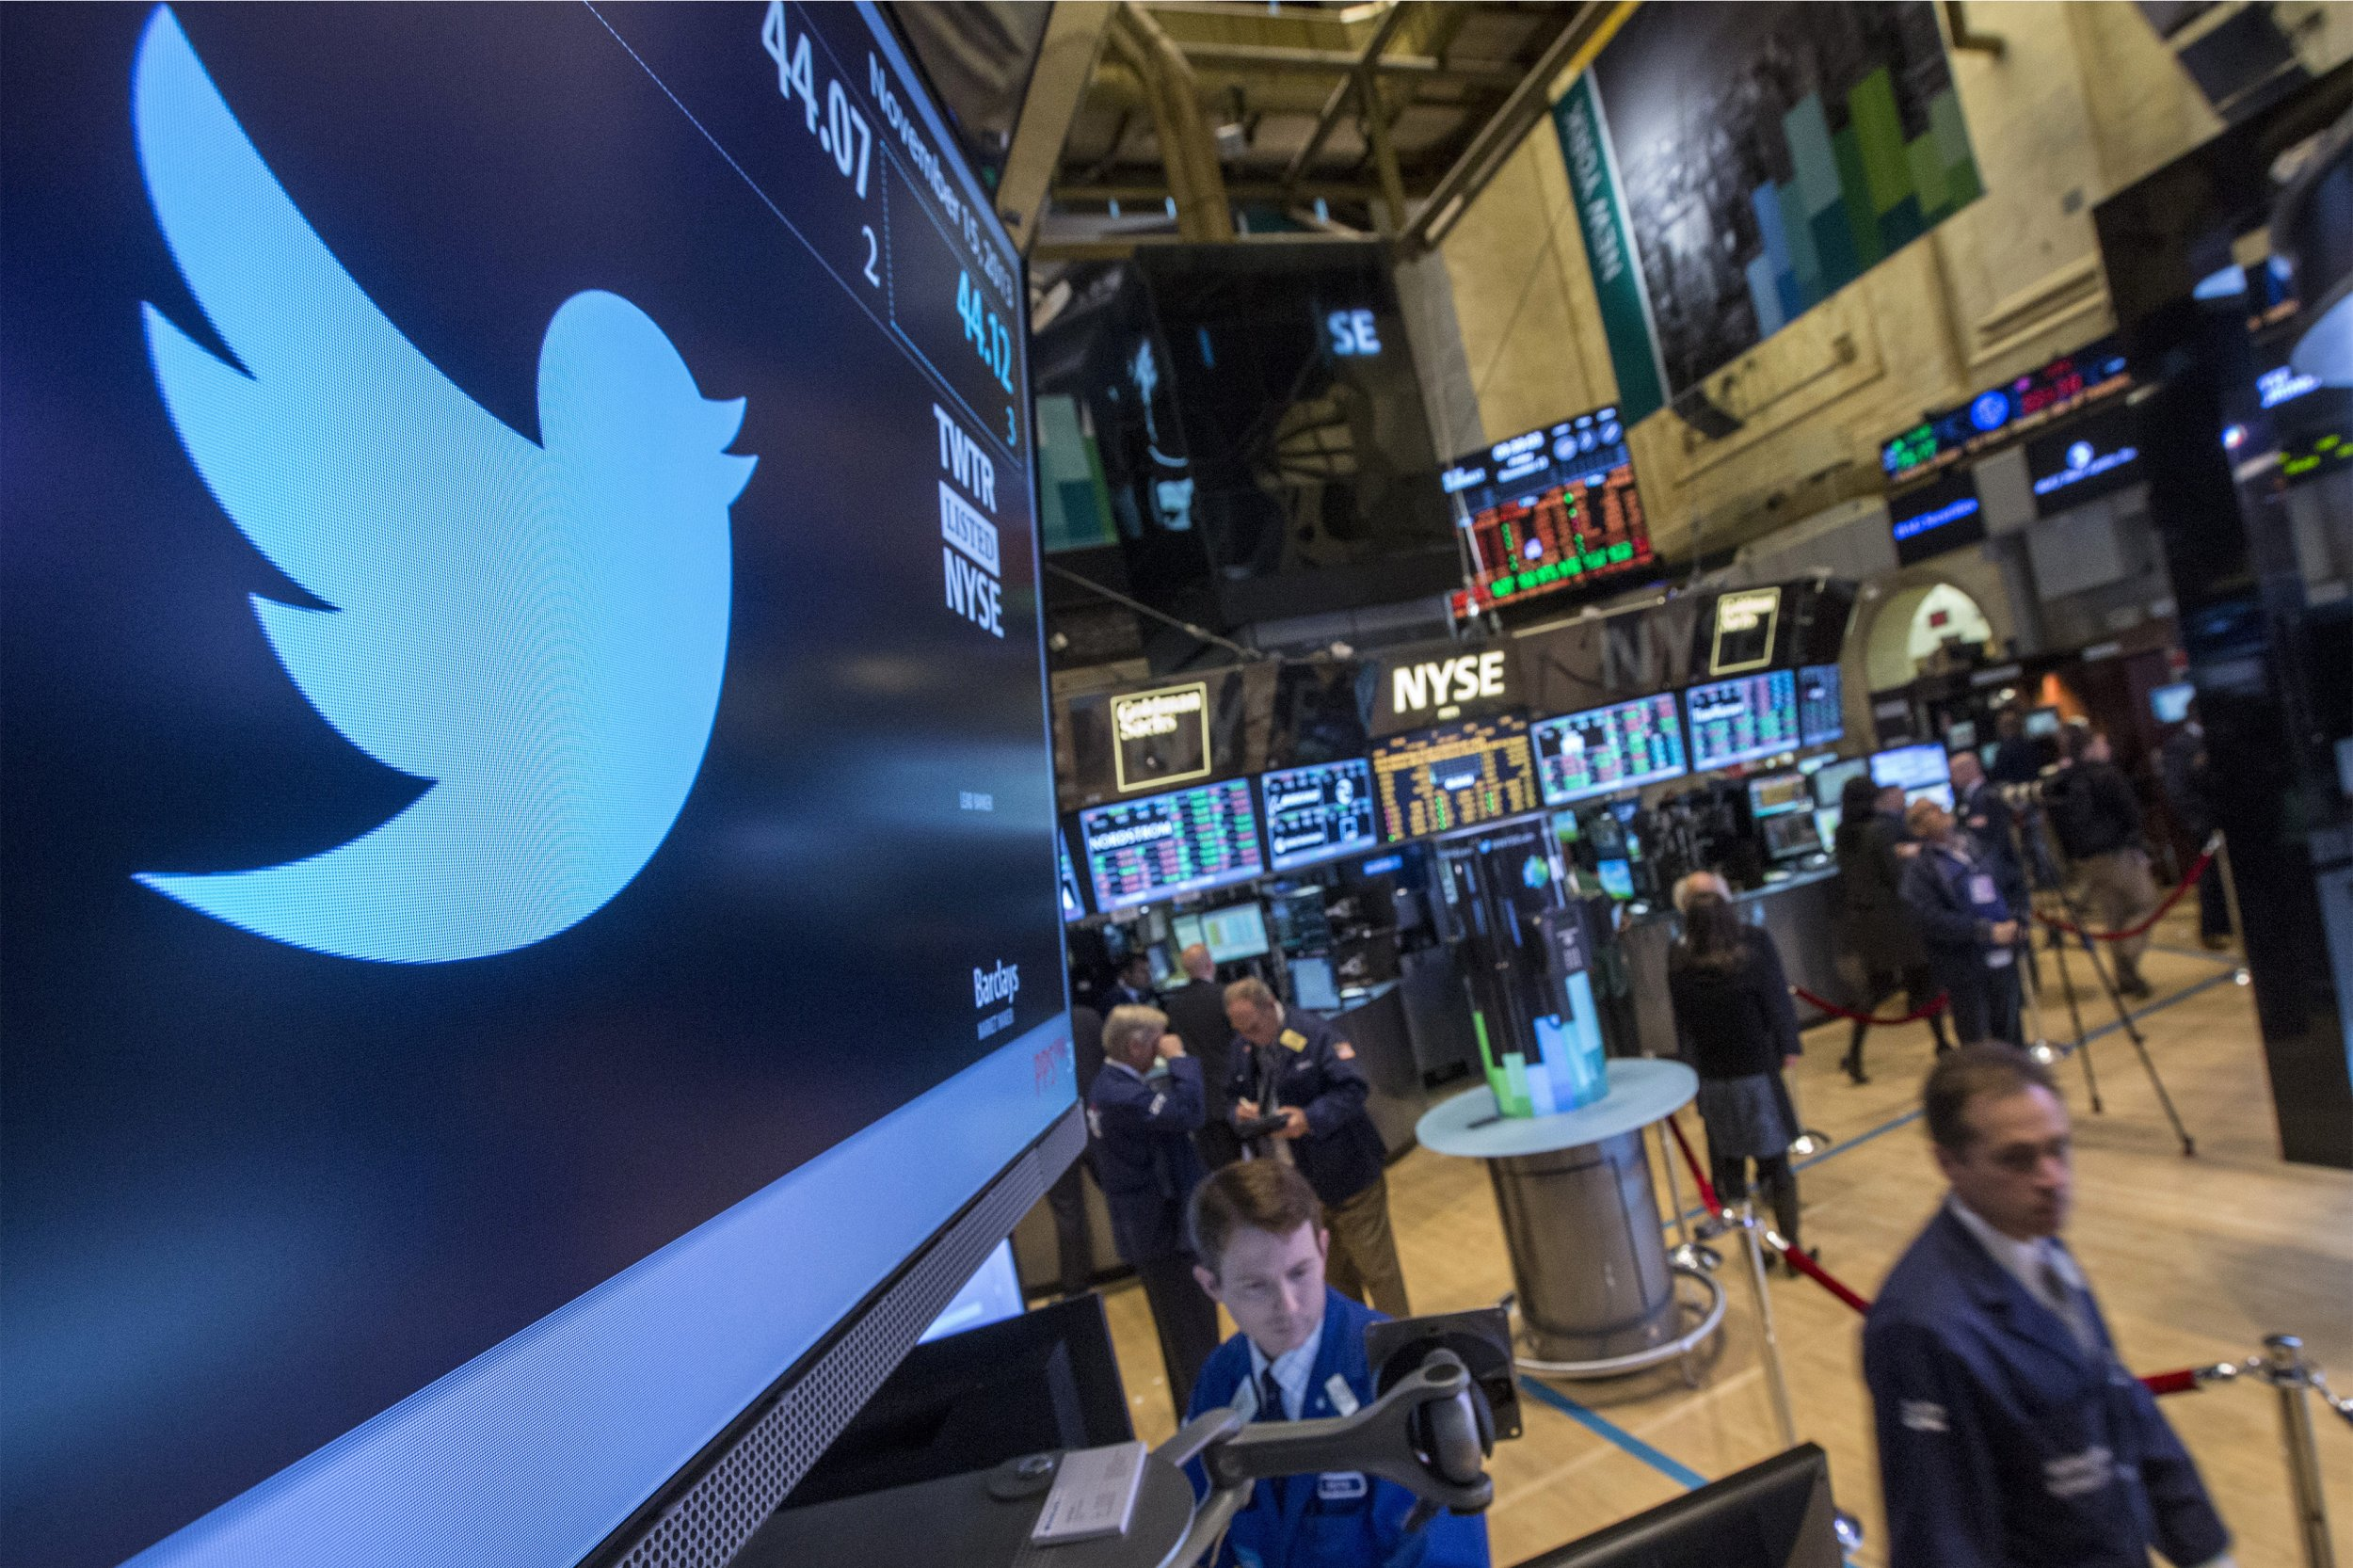 The Twitter symbol is displayed at the post where the stock is traded on the floor of the New York Stock Exchange, November 15, 2013.